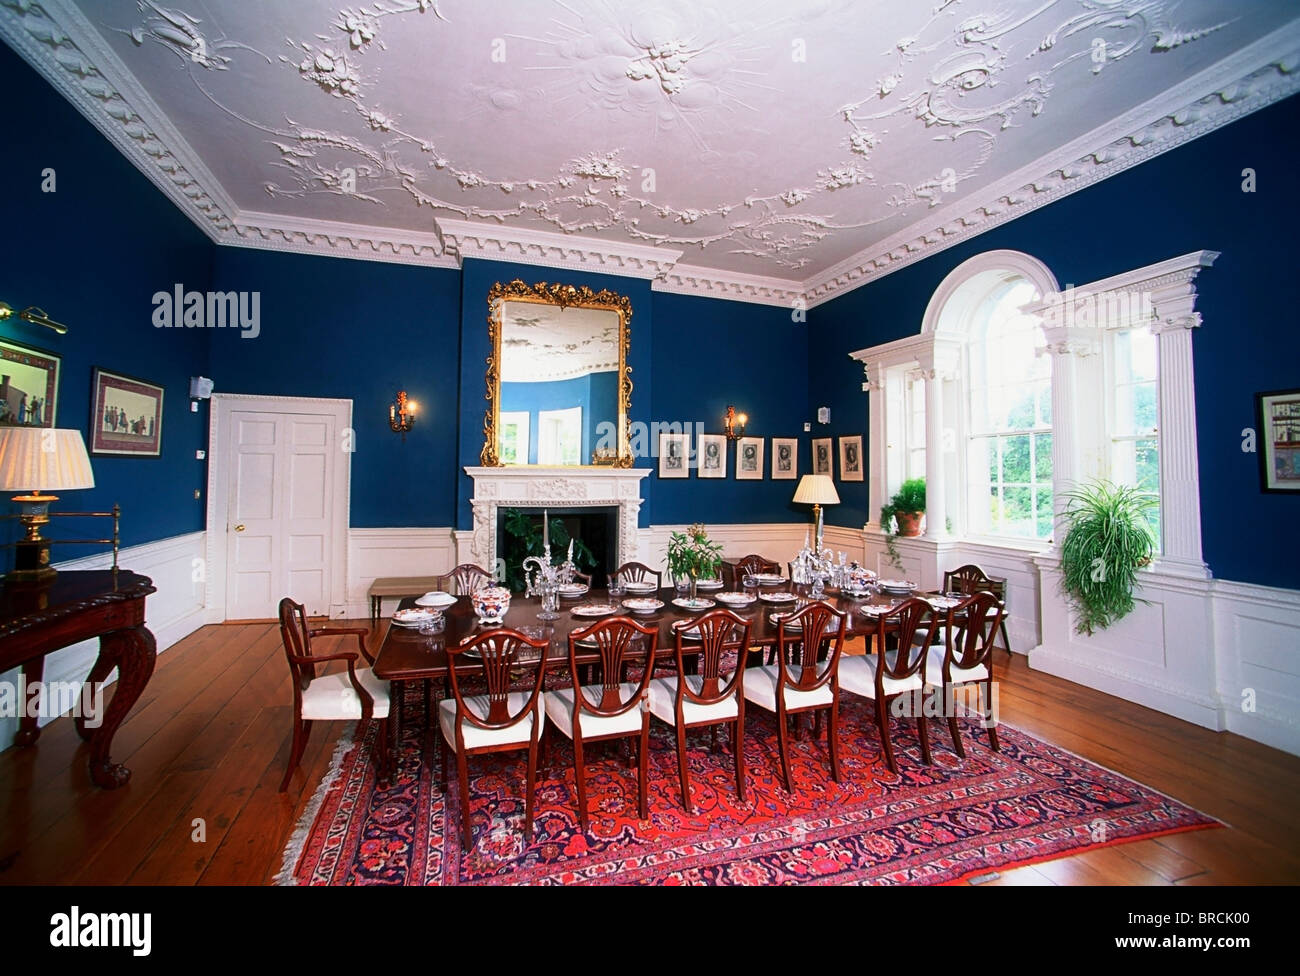 Ireland 18th century house interior stock photos ireland